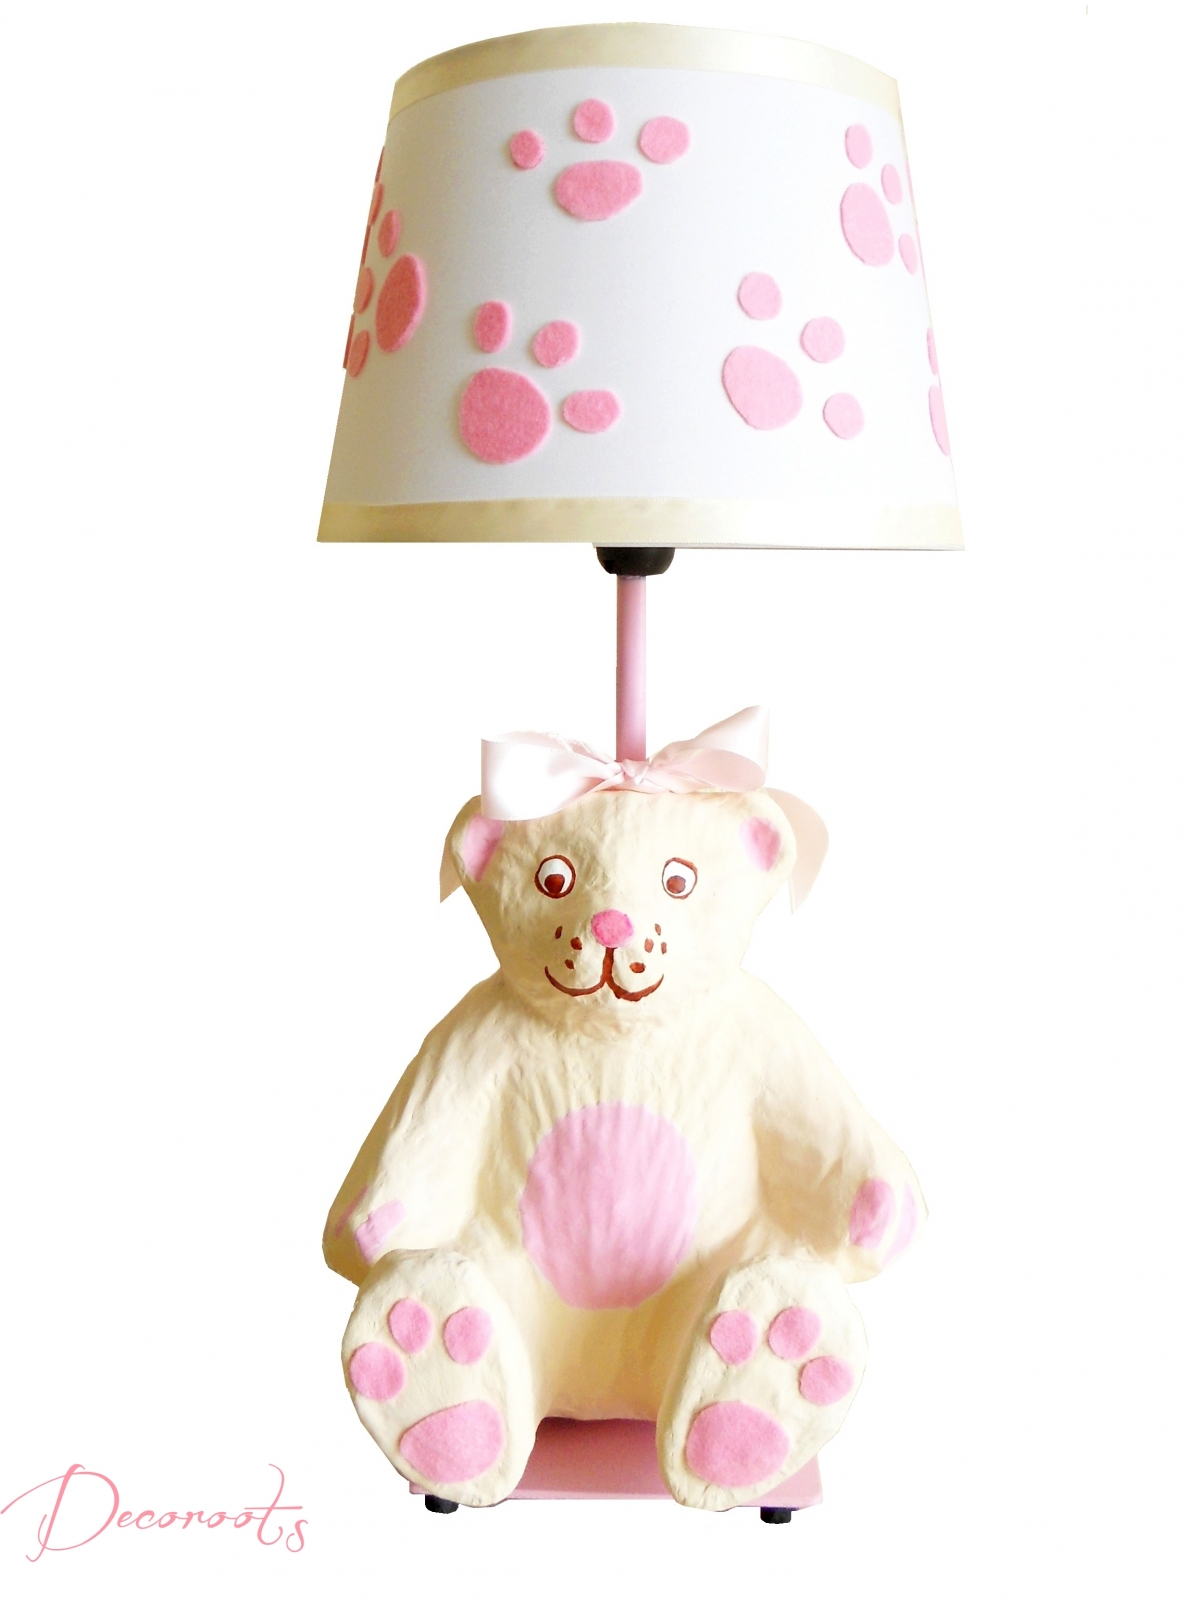 lampe de chevet enfant b b oursonne rose et beige enfant b b luminaire enfant b b decoroots. Black Bedroom Furniture Sets. Home Design Ideas